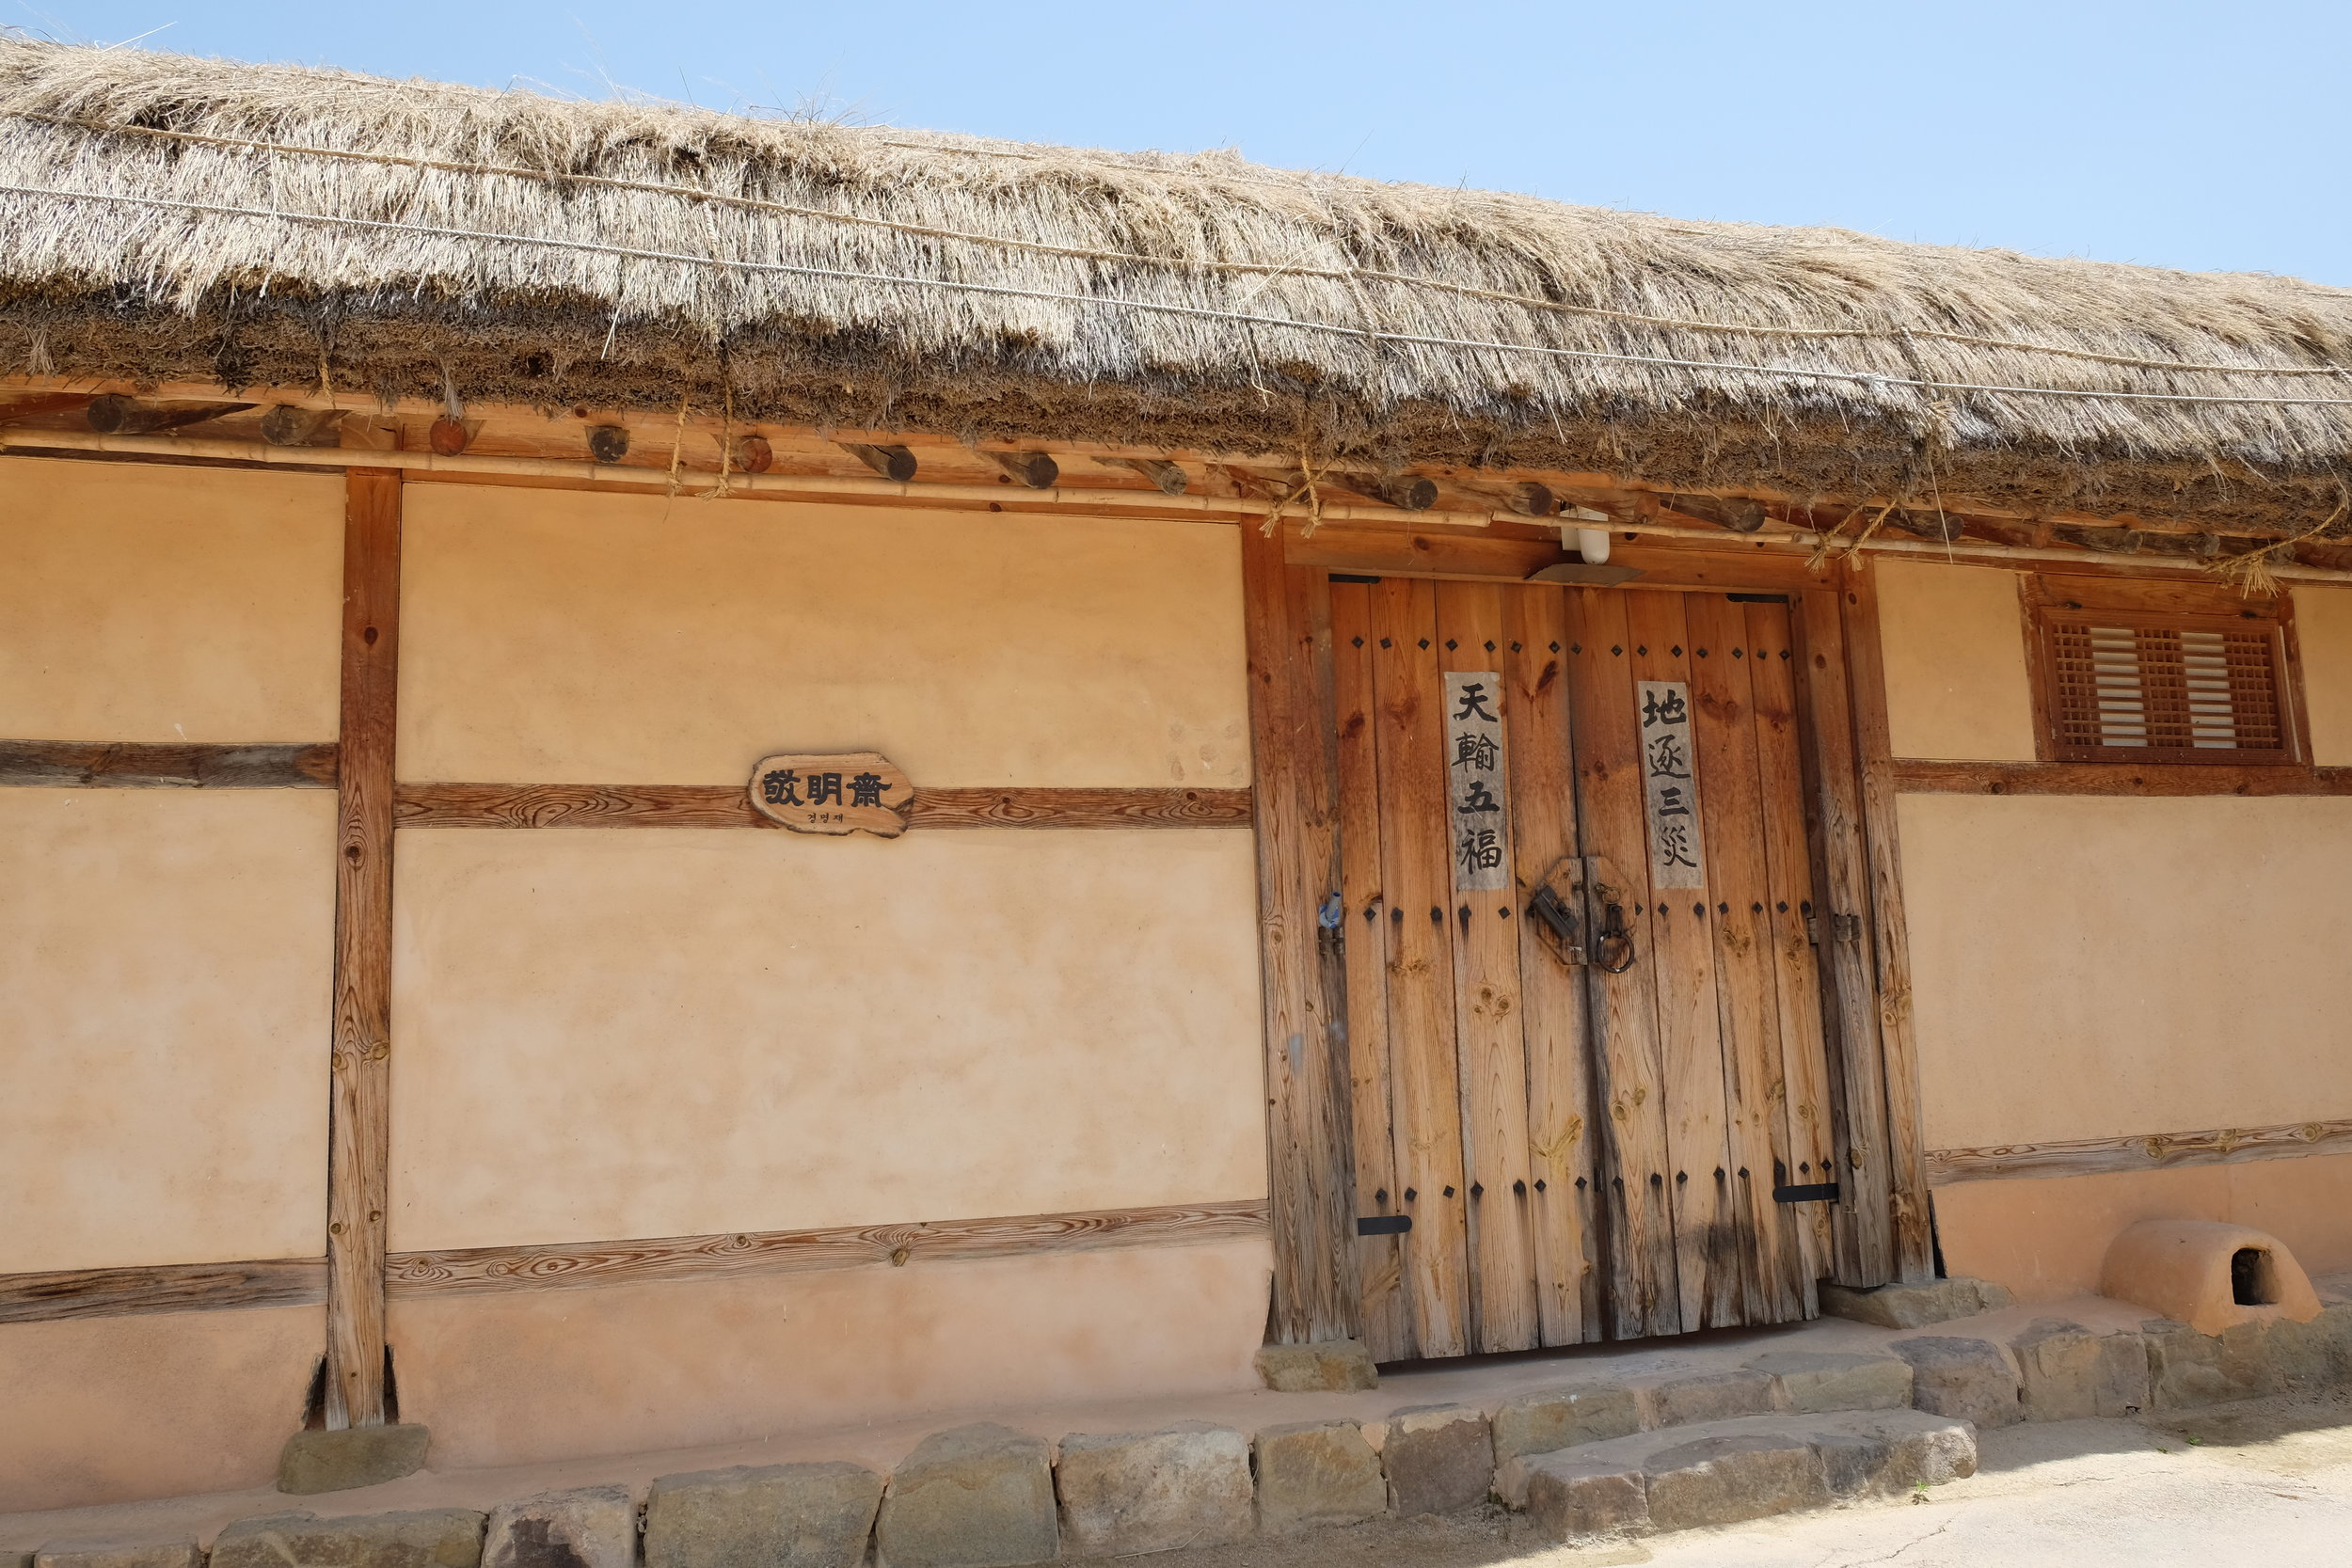 This is the head house of the Pungsan Ryu clan. Being the oldest house in Hahoe Village and built in the 15th century, its architecture is time-honoured and historical. Befitting a head house, Yangjindang is of magnificent scale. Pungsan Ryu clan family reunions are held in the master's quarters. Yangjindang takes its name from the penname of Ryu Yeong (1687-1761), who compiled the genealogy of the Pungsan Ryu clan for the first time.